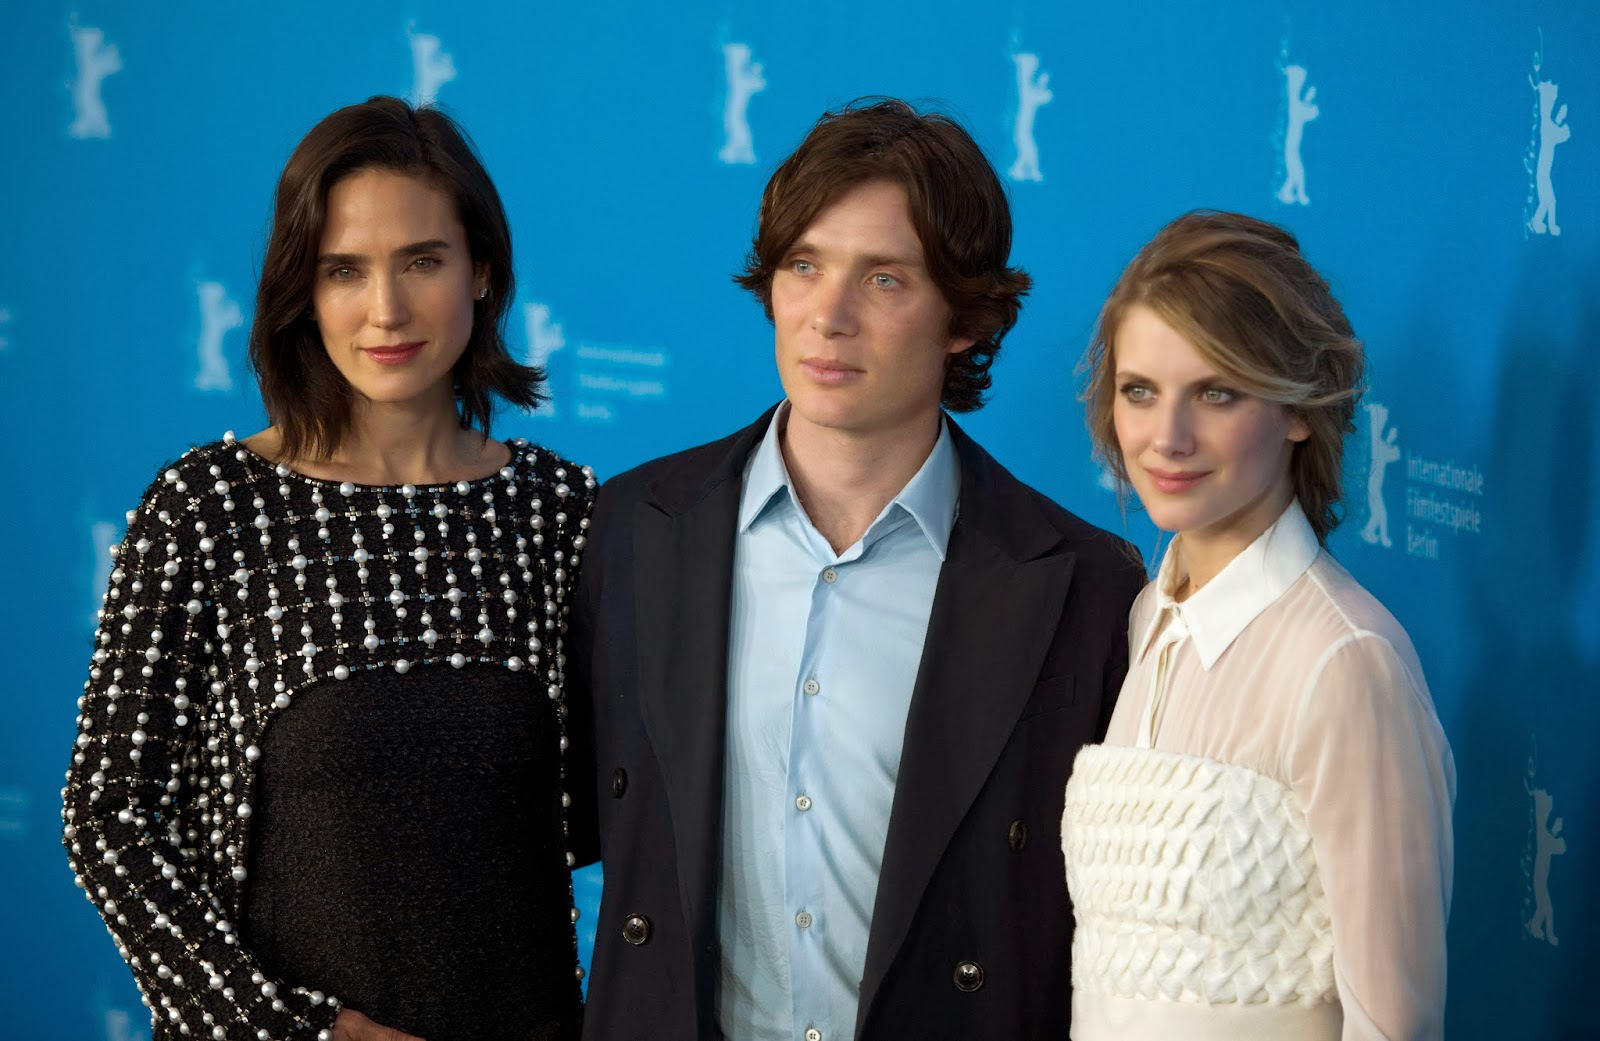 64th Berlinale Film Festival, Actor, Actress, Cillian Murphy, Competition, Festival, Film, Hollywood, Jennifer Connelly, Llosa, Melanie Laurent, Movie, Showbiz, Winta McGrath, Zen McGrath,